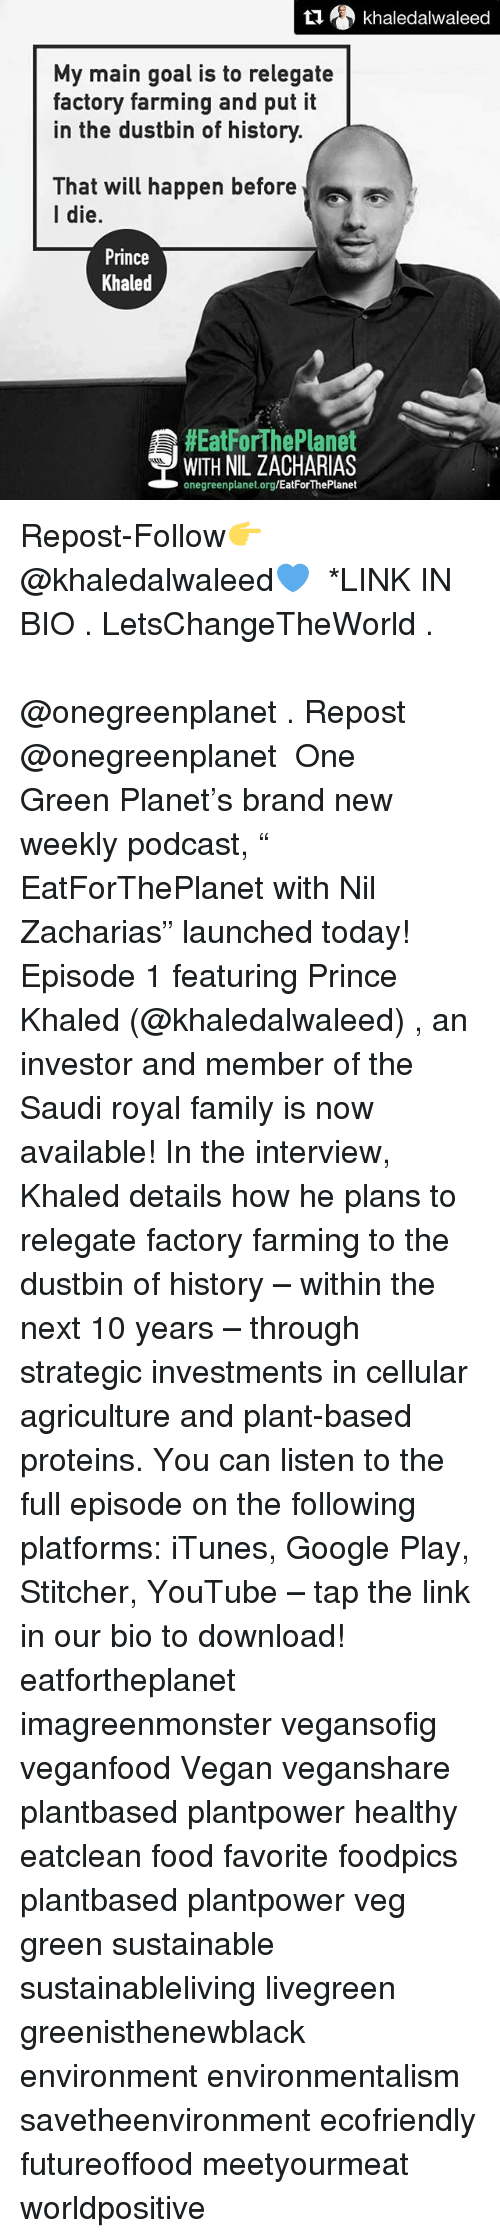 "Family, Food, and Google: khaledalwaleed  My main goal is to relegate  factory farming and put it  in the dustbin of history.  That will happen before  I die  Prince  Khaled  HEatForThePlanet  WITH NIL ZACHARIAS  onegreenplanet.org/EatForThePlanet Repost-Follow👉 @khaledalwaleed💙 ・・・ *LINK IN BIO . LetsChangeTheWorld . بودكاست مع الأصدقاء في @onegreenplanet . Repost @onegreenplanet ・・・ One Green Planet's brand new weekly podcast, "" EatForThePlanet with Nil Zacharias"" launched today! Episode 1 featuring Prince Khaled (@khaledalwaleed) , an investor and member of the Saudi royal family is now available! In the interview, Khaled details how he plans to relegate factory farming to the dustbin of history – within the next 10 years – through strategic investments in cellular agriculture and plant-based proteins. You can listen to the full episode on the following platforms: iTunes, Google Play, Stitcher, YouTube – tap the link in our bio to download! eatfortheplanet imagreenmonster vegansofig veganfood Vegan veganshare plantbased plantpower healthy eatclean food favorite foodpics plantbased plantpower veg green sustainable sustainableliving livegreen greenisthenewblack environment environmentalism savetheenvironment ecofriendly futureoffood meetyourmeat worldpositive"